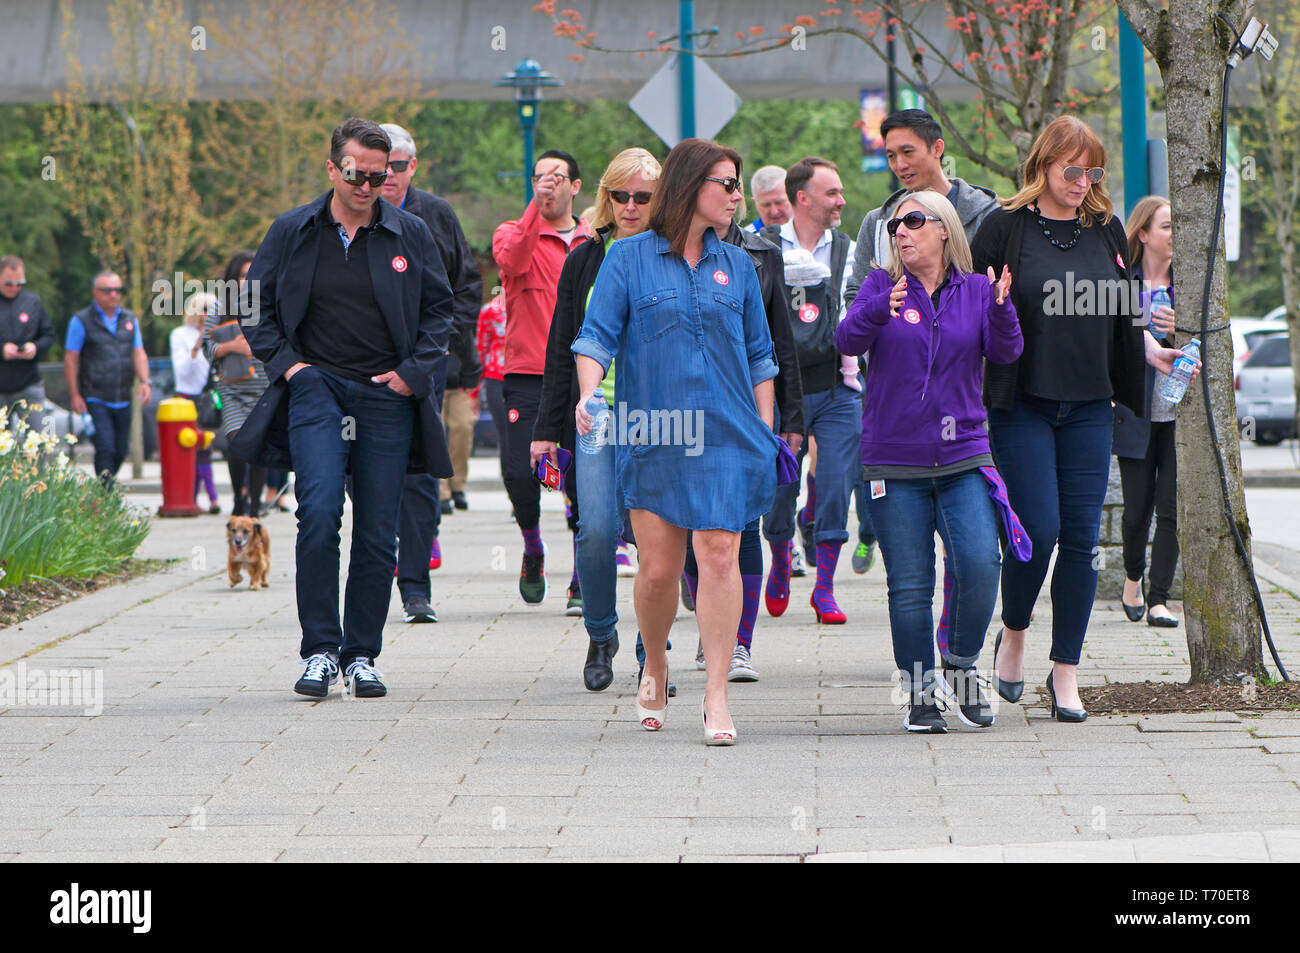 A group of people walking for gender equality during a Walk a Mile in Her Shoes campaign. - Stock Image